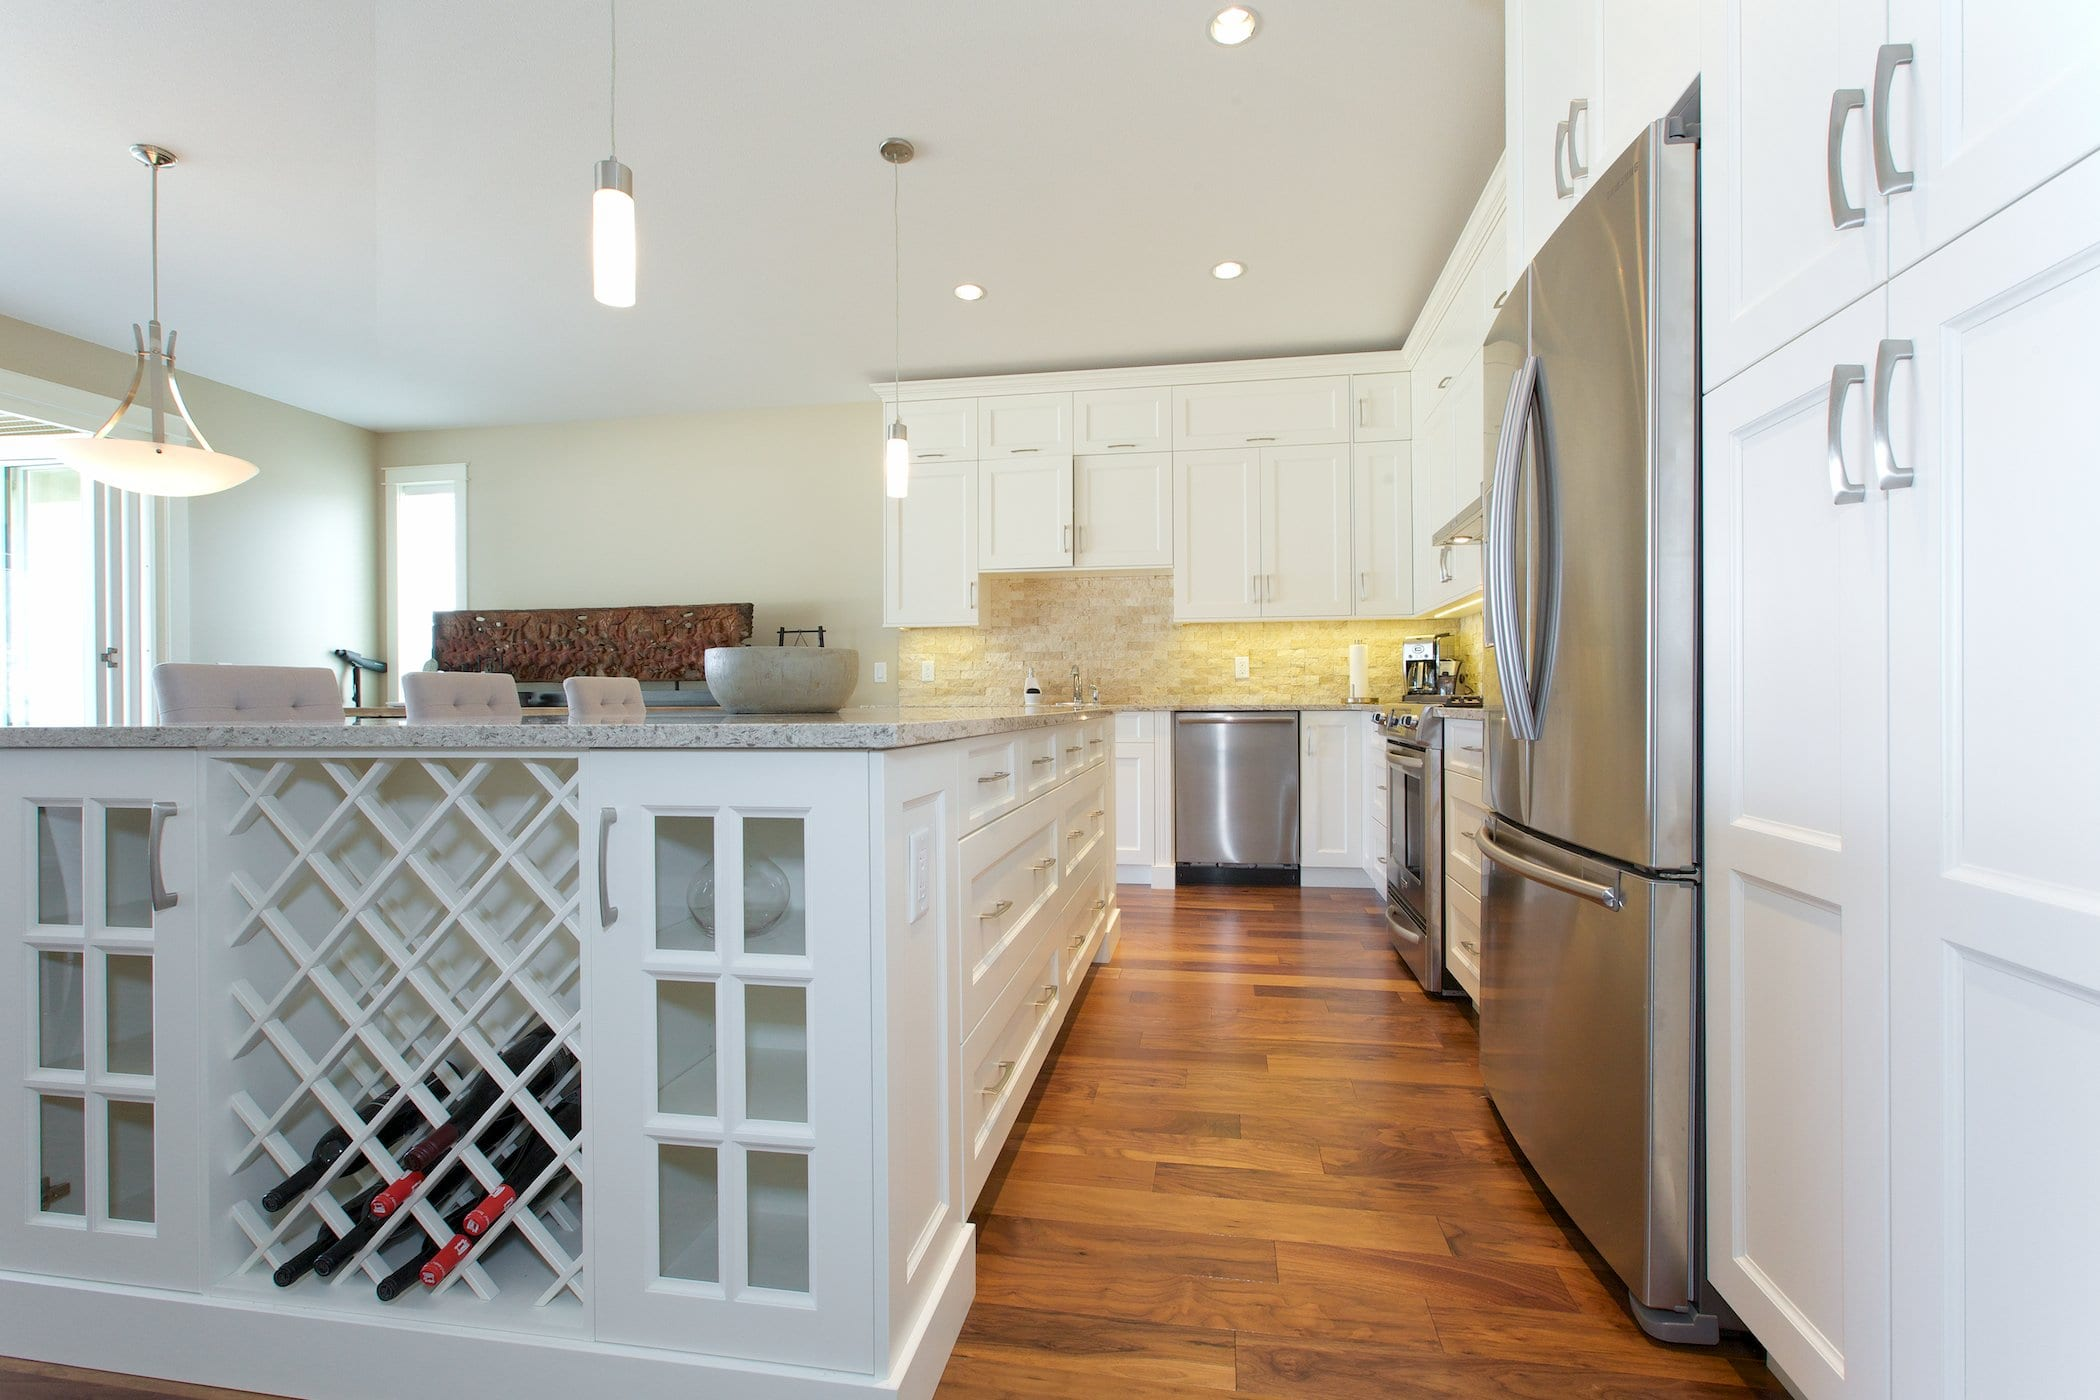 interior shot of west harbour home kitchen with white cabinetry fridge freezer stove and dishwasher